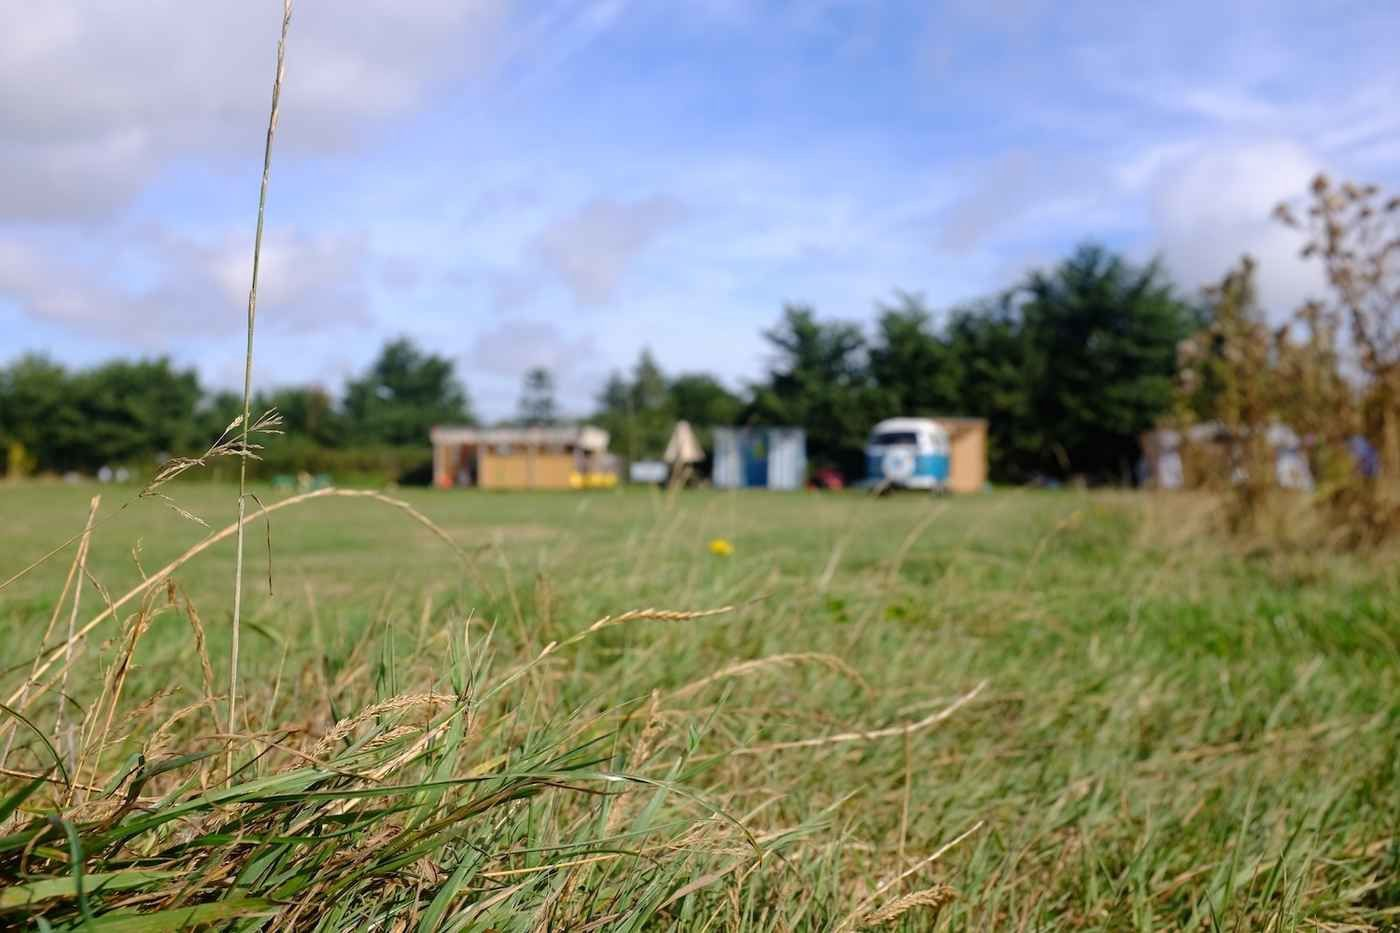 Campsites in the New Forest